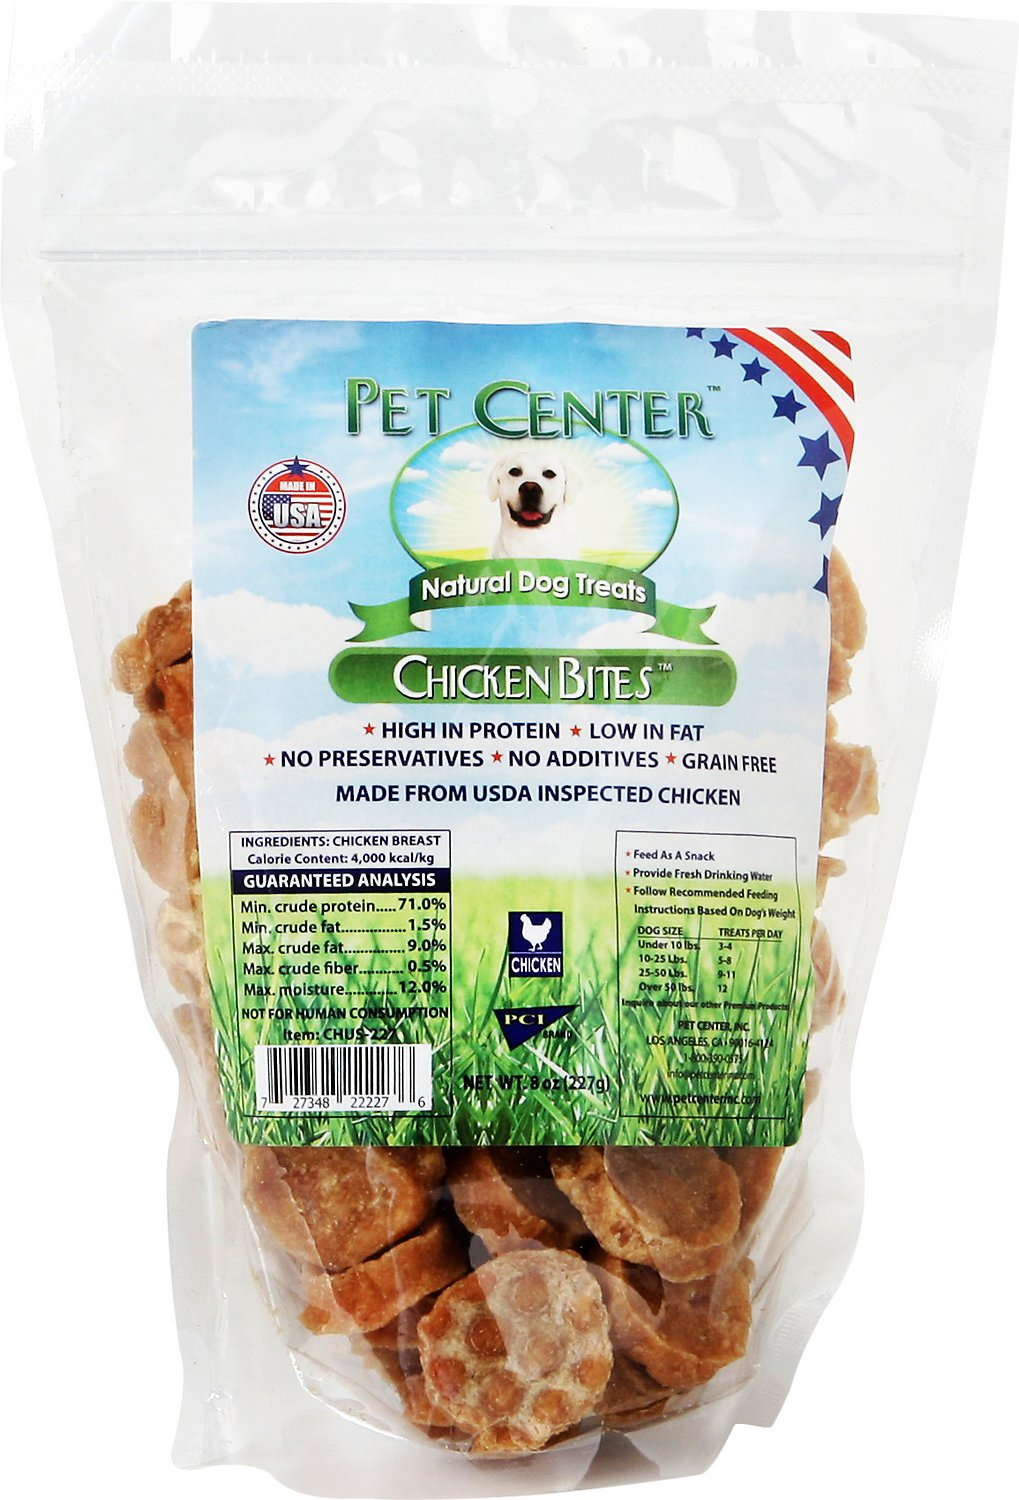 Pet Center Chicken Bites Dog Treats, 8-oz bag